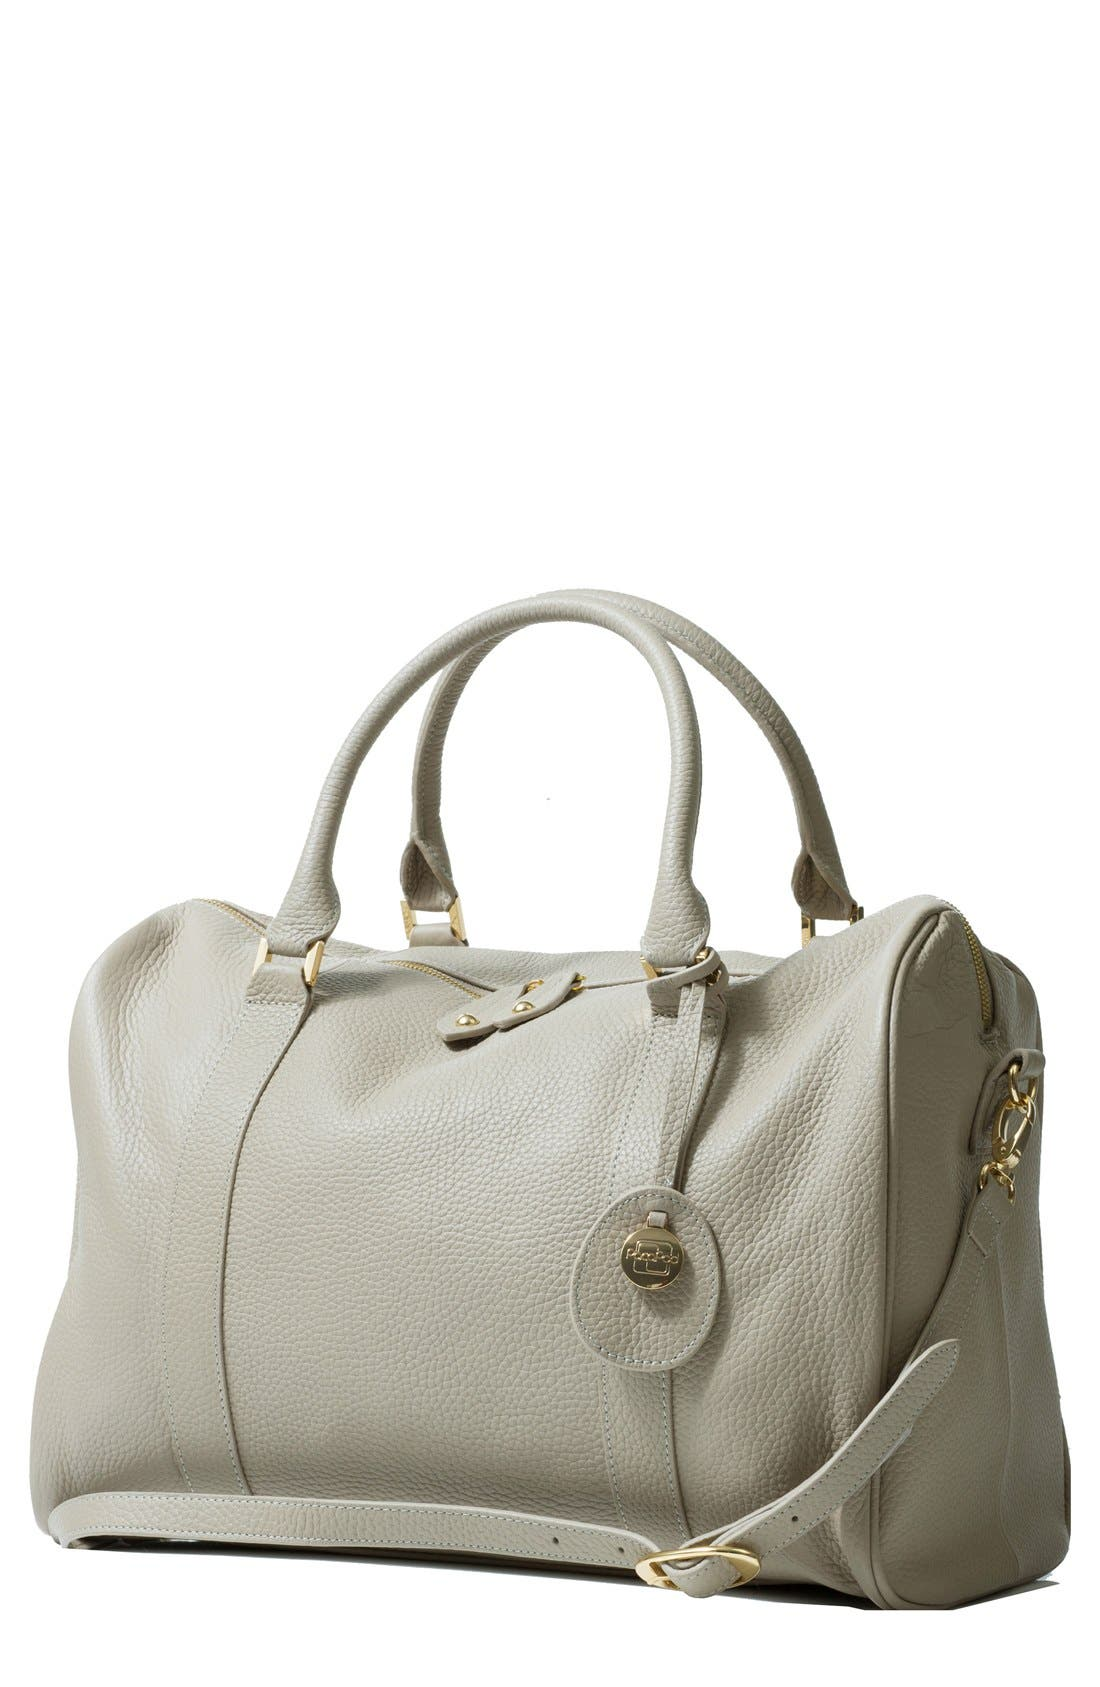 Alternate Image 1 Selected - PacaPod 'Firenze' Leather Diaper Bag